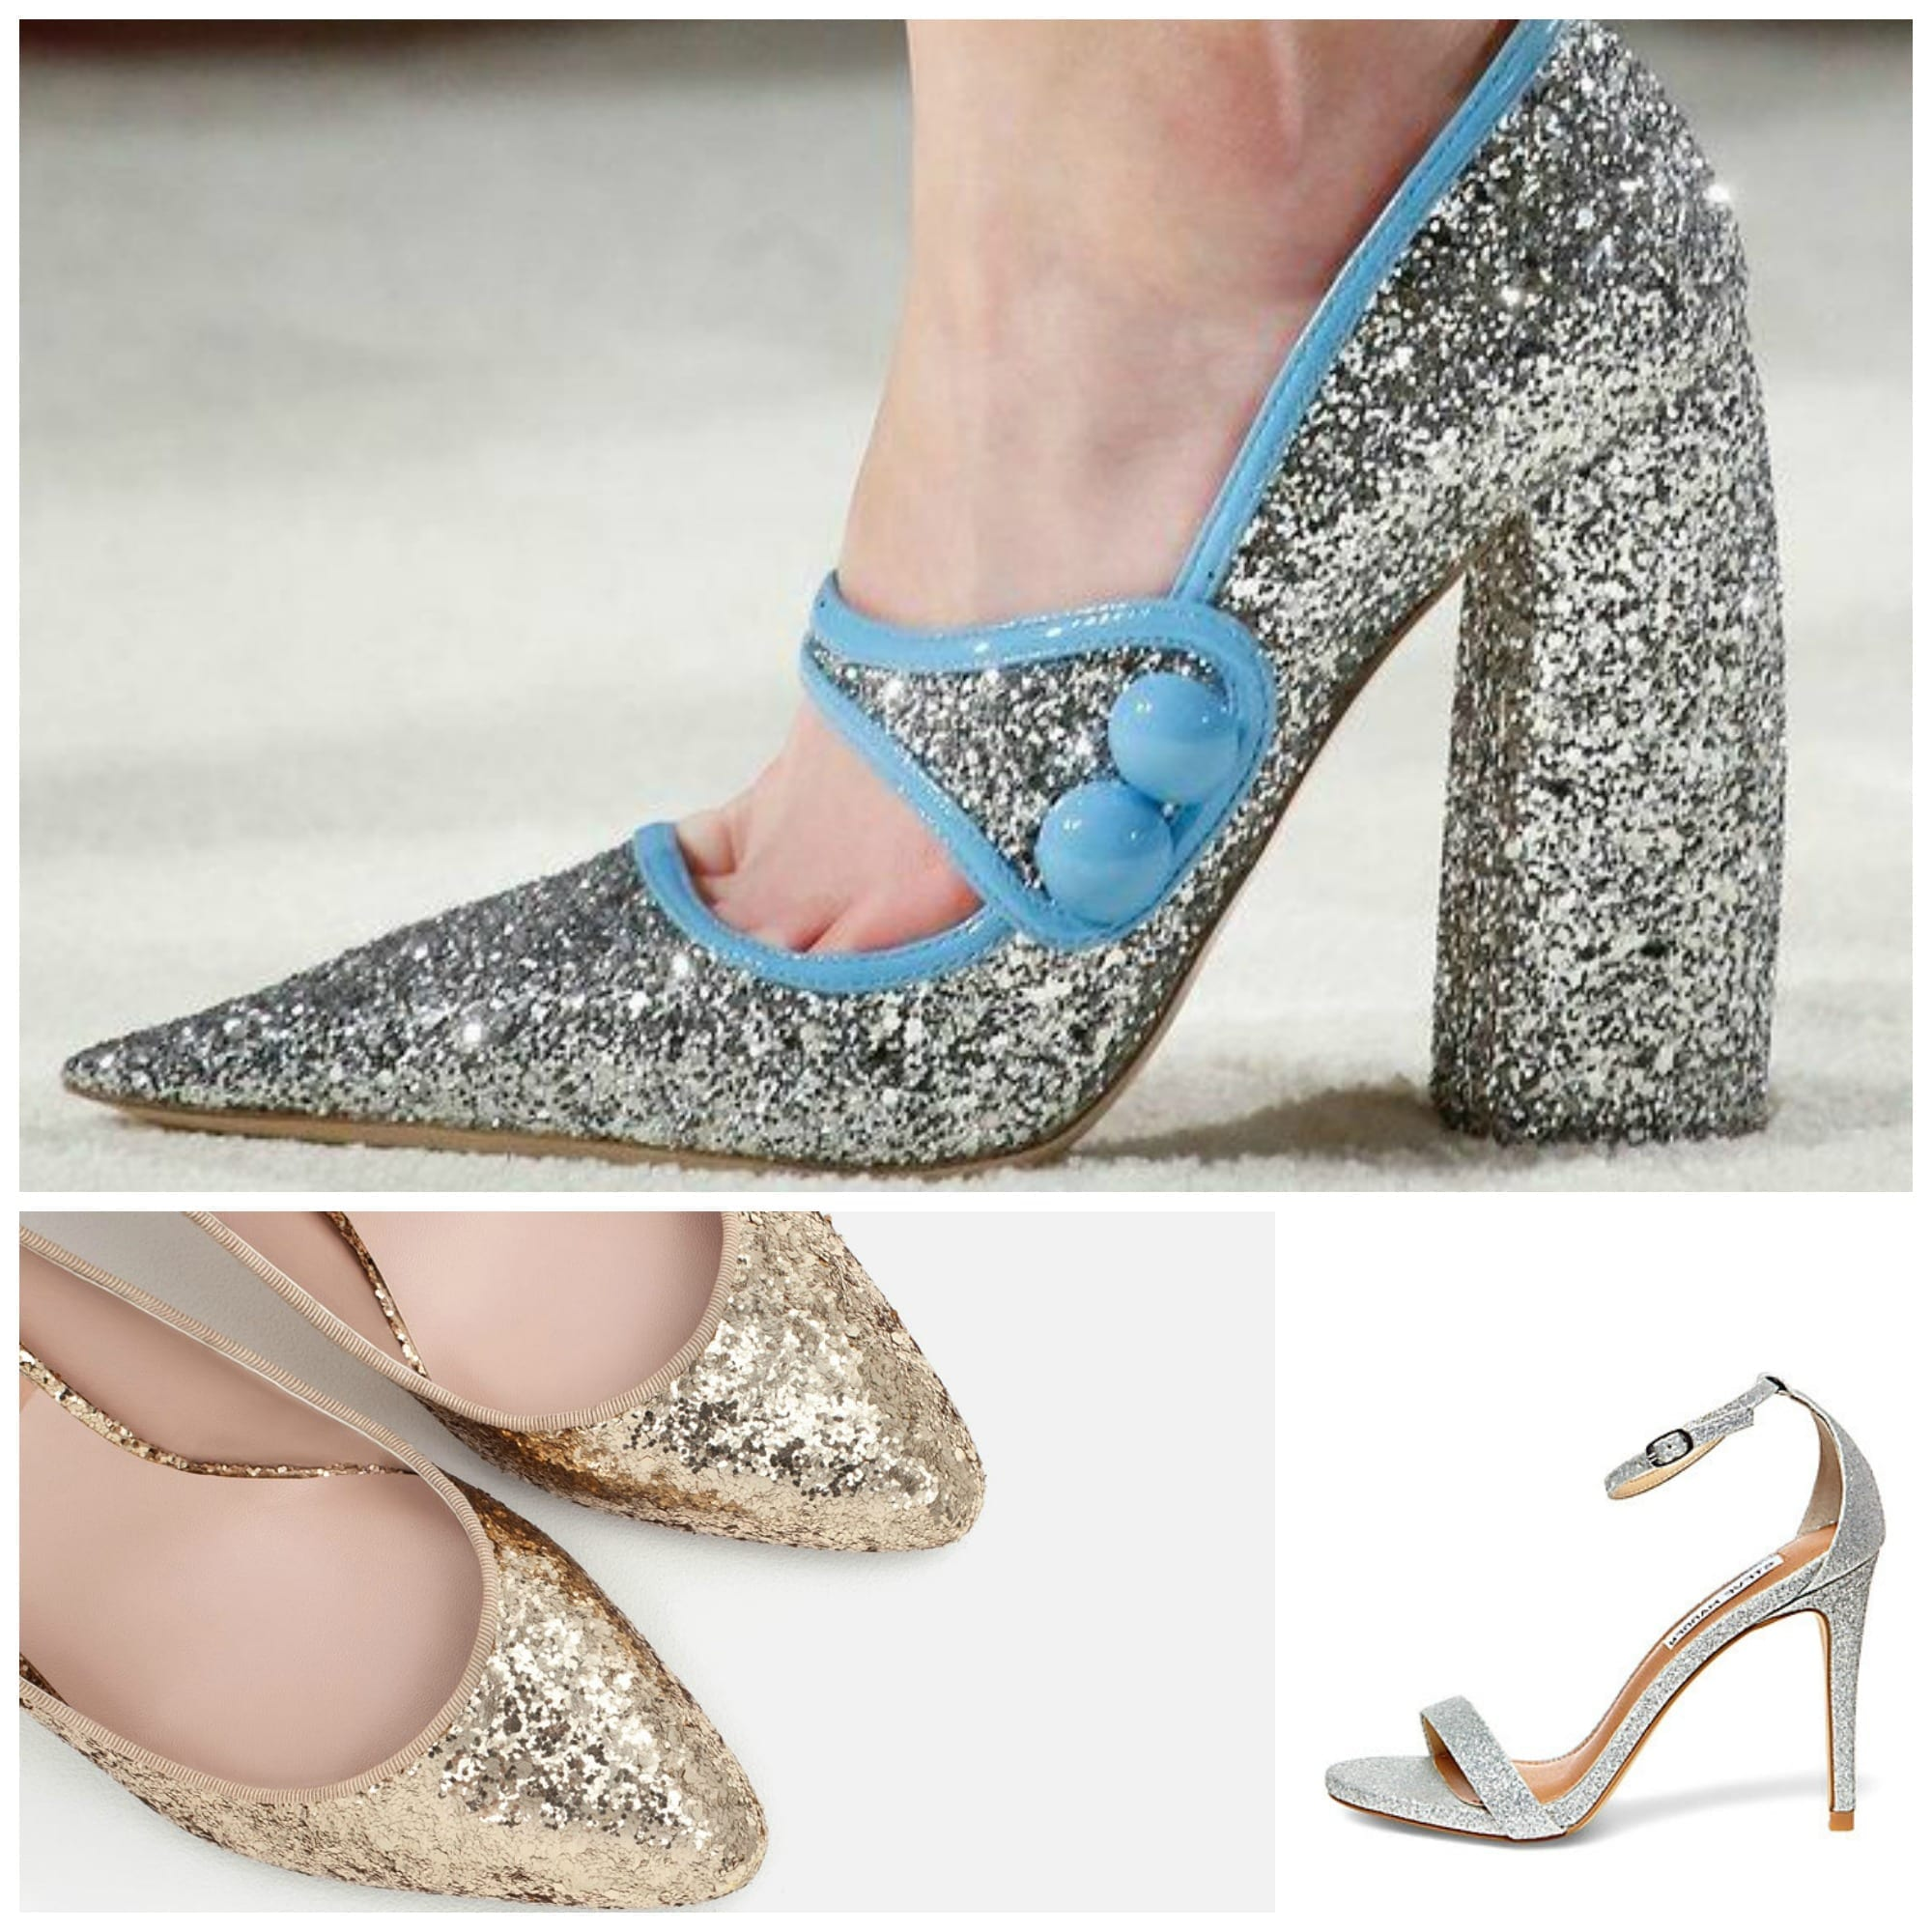 che scarpe vanno di moda, sophia webster shoes, rockstud valentino, glitter scarpe, theladycracy.it, elisa bellino, miu miu glitter shoes, jimmy choo heels